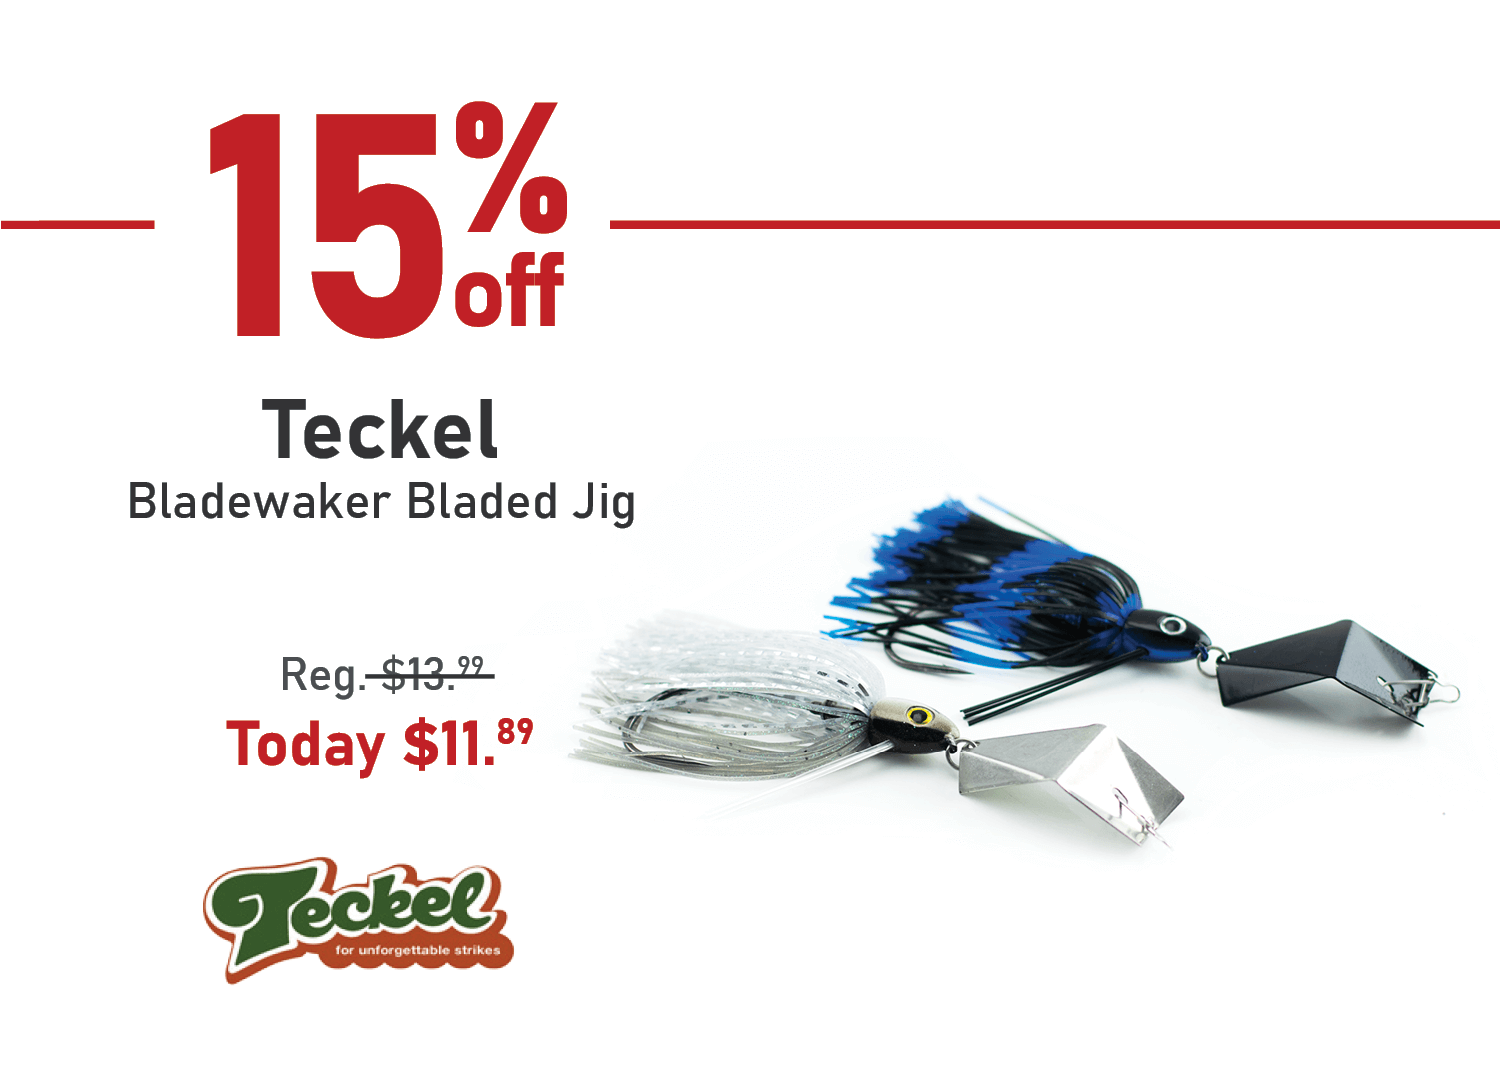 Save 15% on the Teckel Bladewaker Bladed Jig